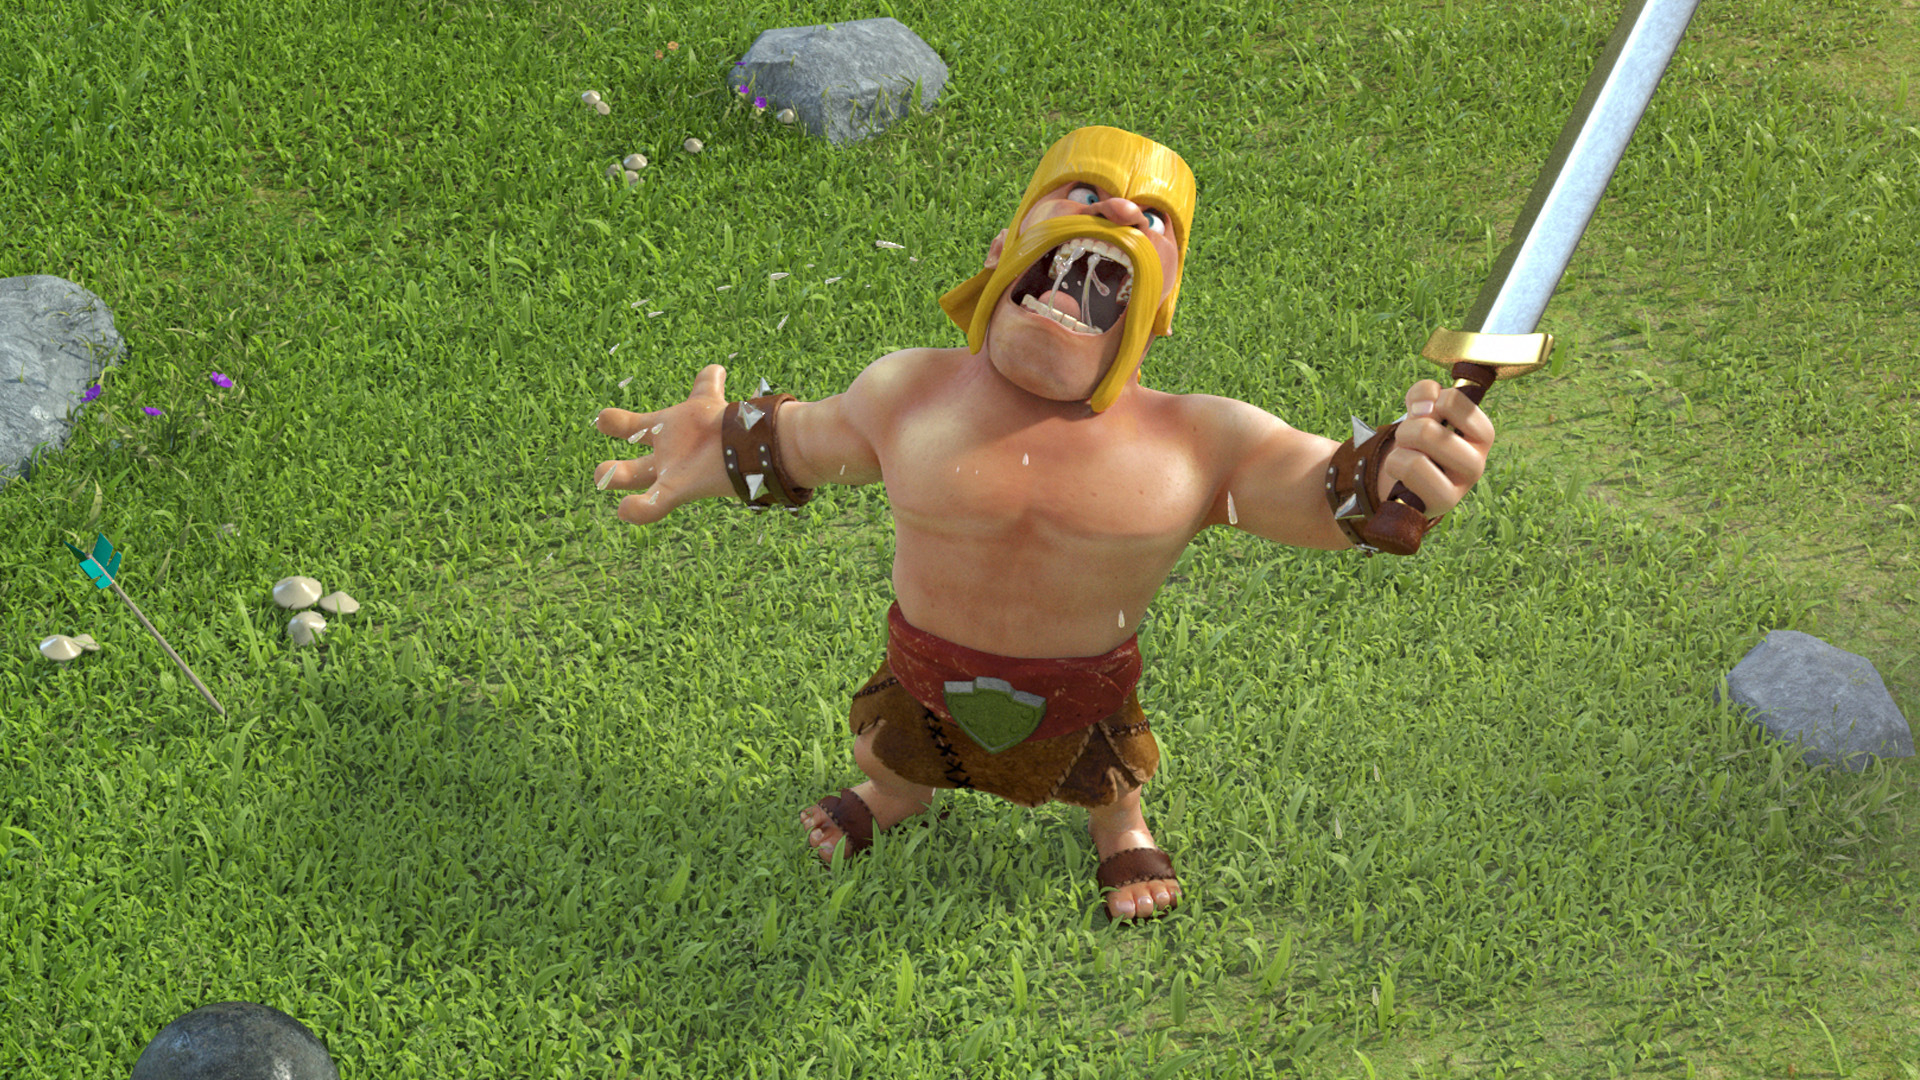 Barbarian Clash Of Clans Hd Hd Games 4k Wallpapers: Clash Of Clans Barbarian HD Wallpaper